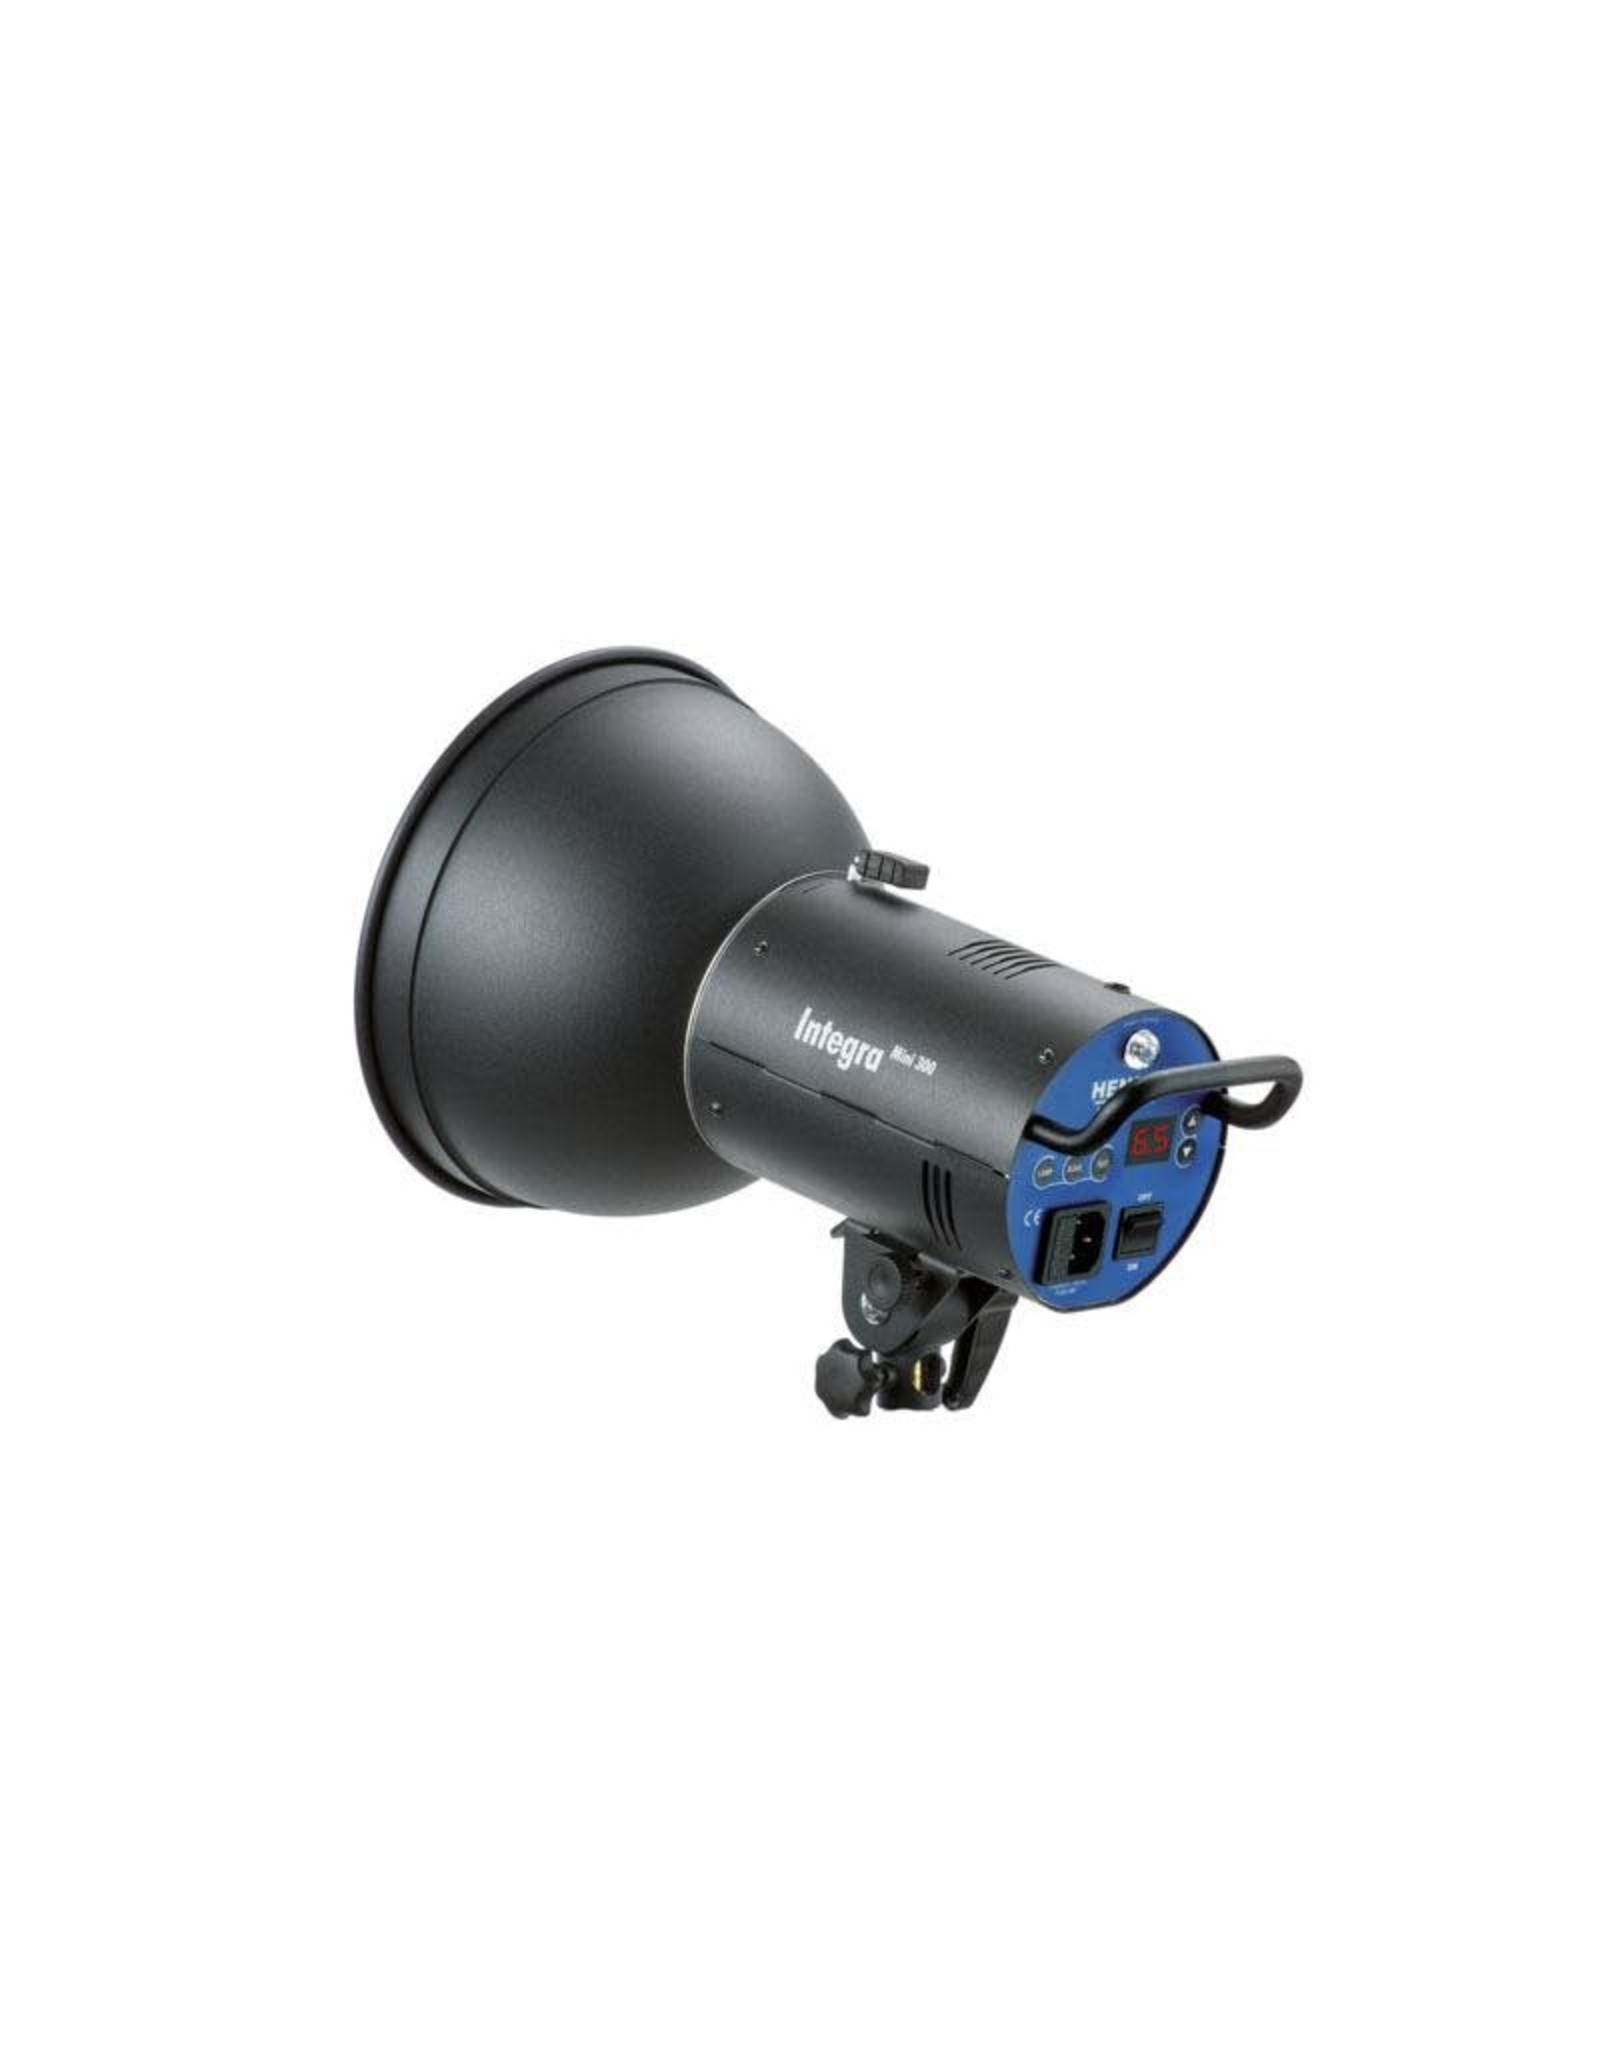 Hensel Hensel - INTEGRA Mini 300 (Multi voltage) Includes: protective cap, Sync cable, power-cord. Glass dome (9454638), Canadian safety requirement